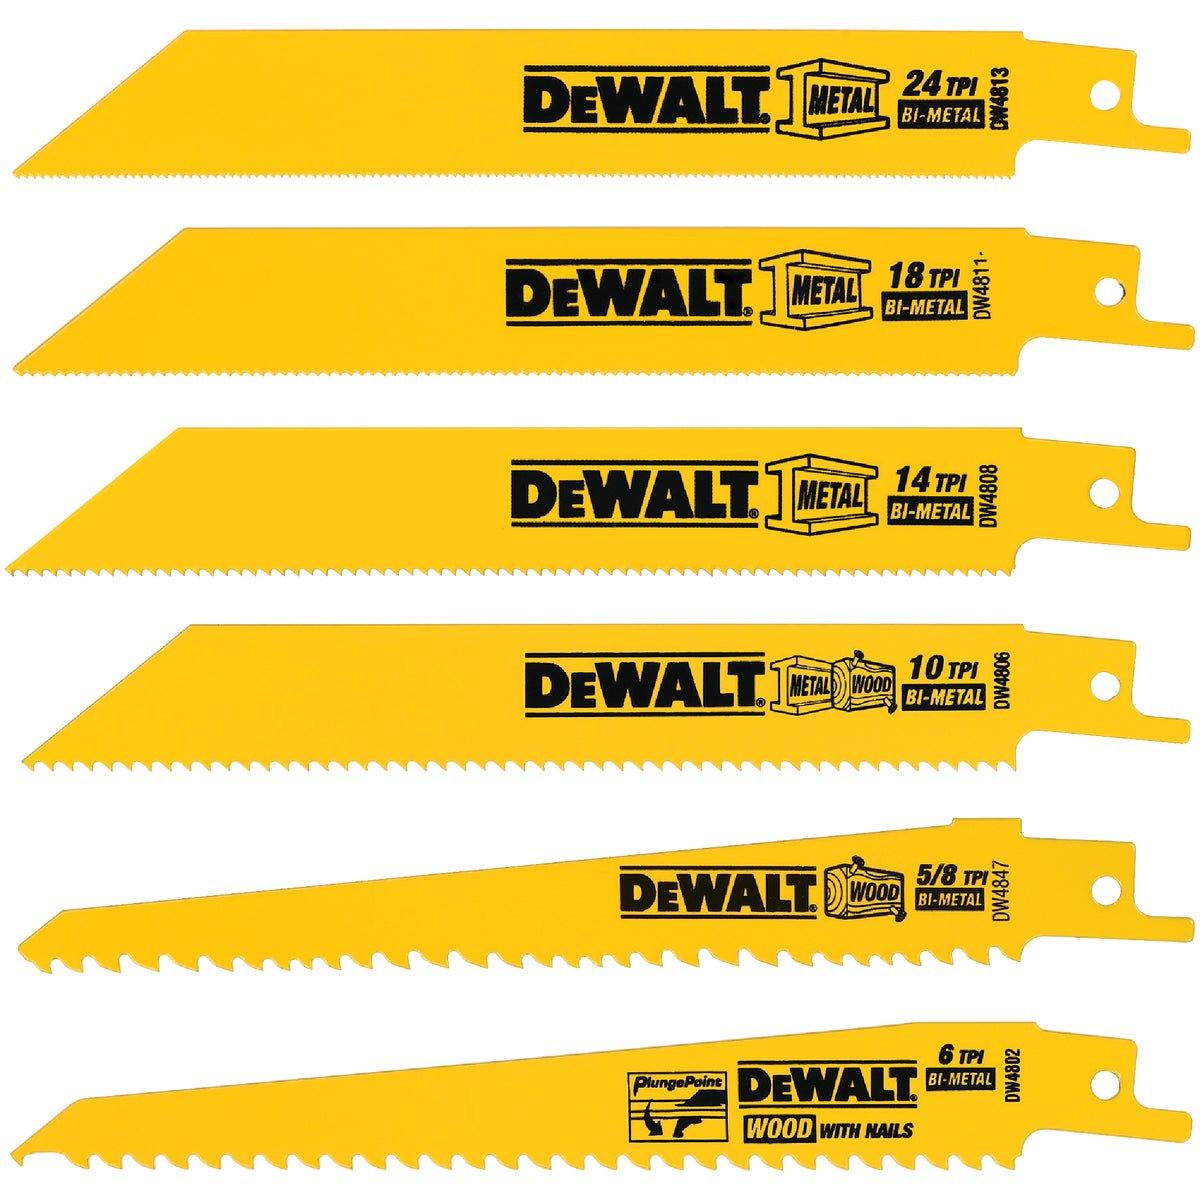 Black & Decker/DWLT 6PC RECIP BLADE SET DW4856